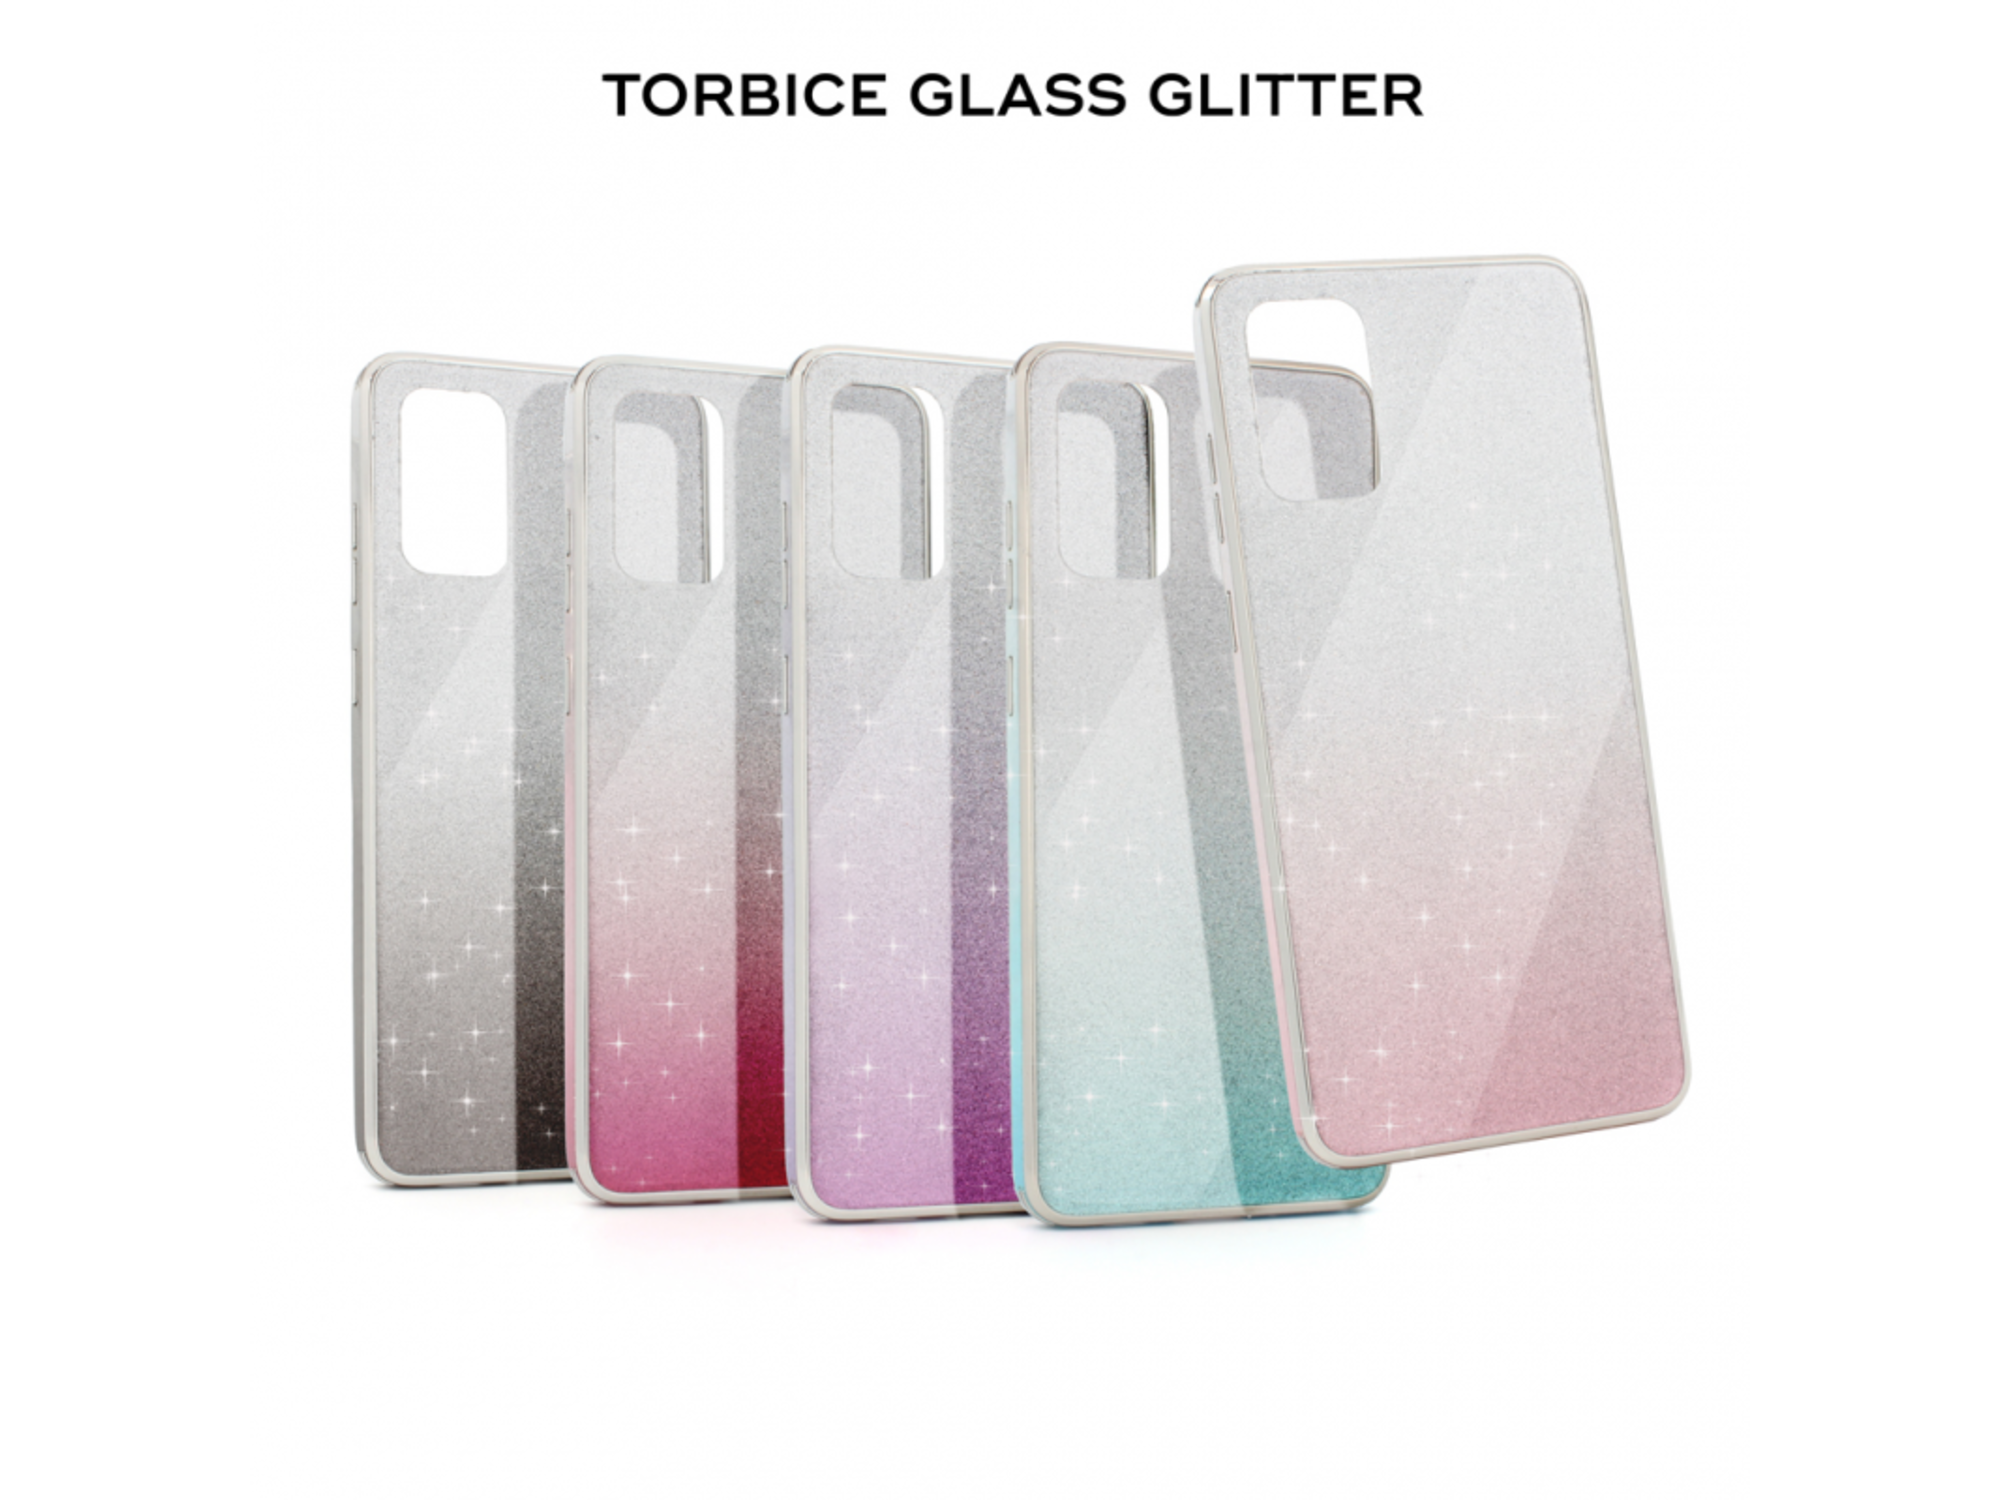 Torbica Glass Glitter za iPhone 11 Pro 5.8